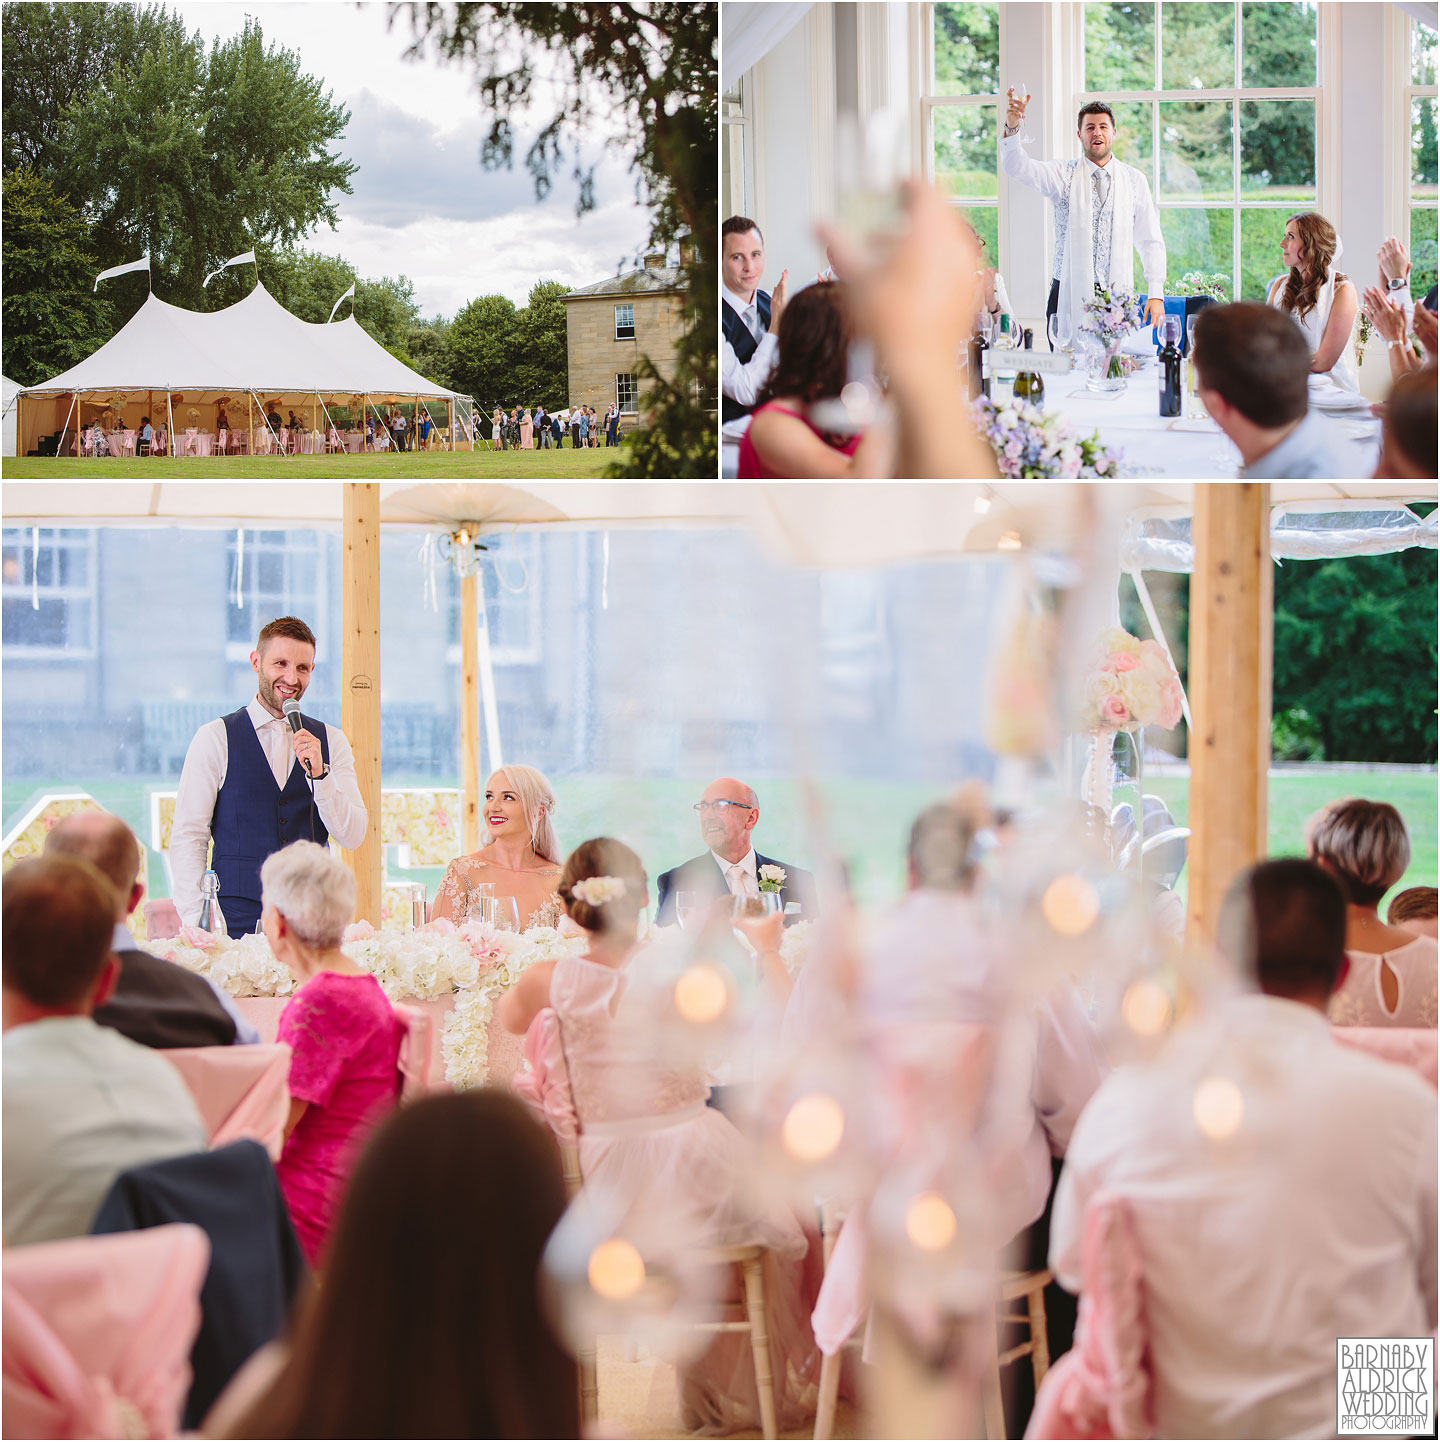 Papakata Sperry tent teepee wedding breakfast at Saltmarshe Hall near Goole in East Yorkshire, Wedding photography at Saltmarshe Hall, East Yorkshire Wedding Photographer Barnaby Aldrick